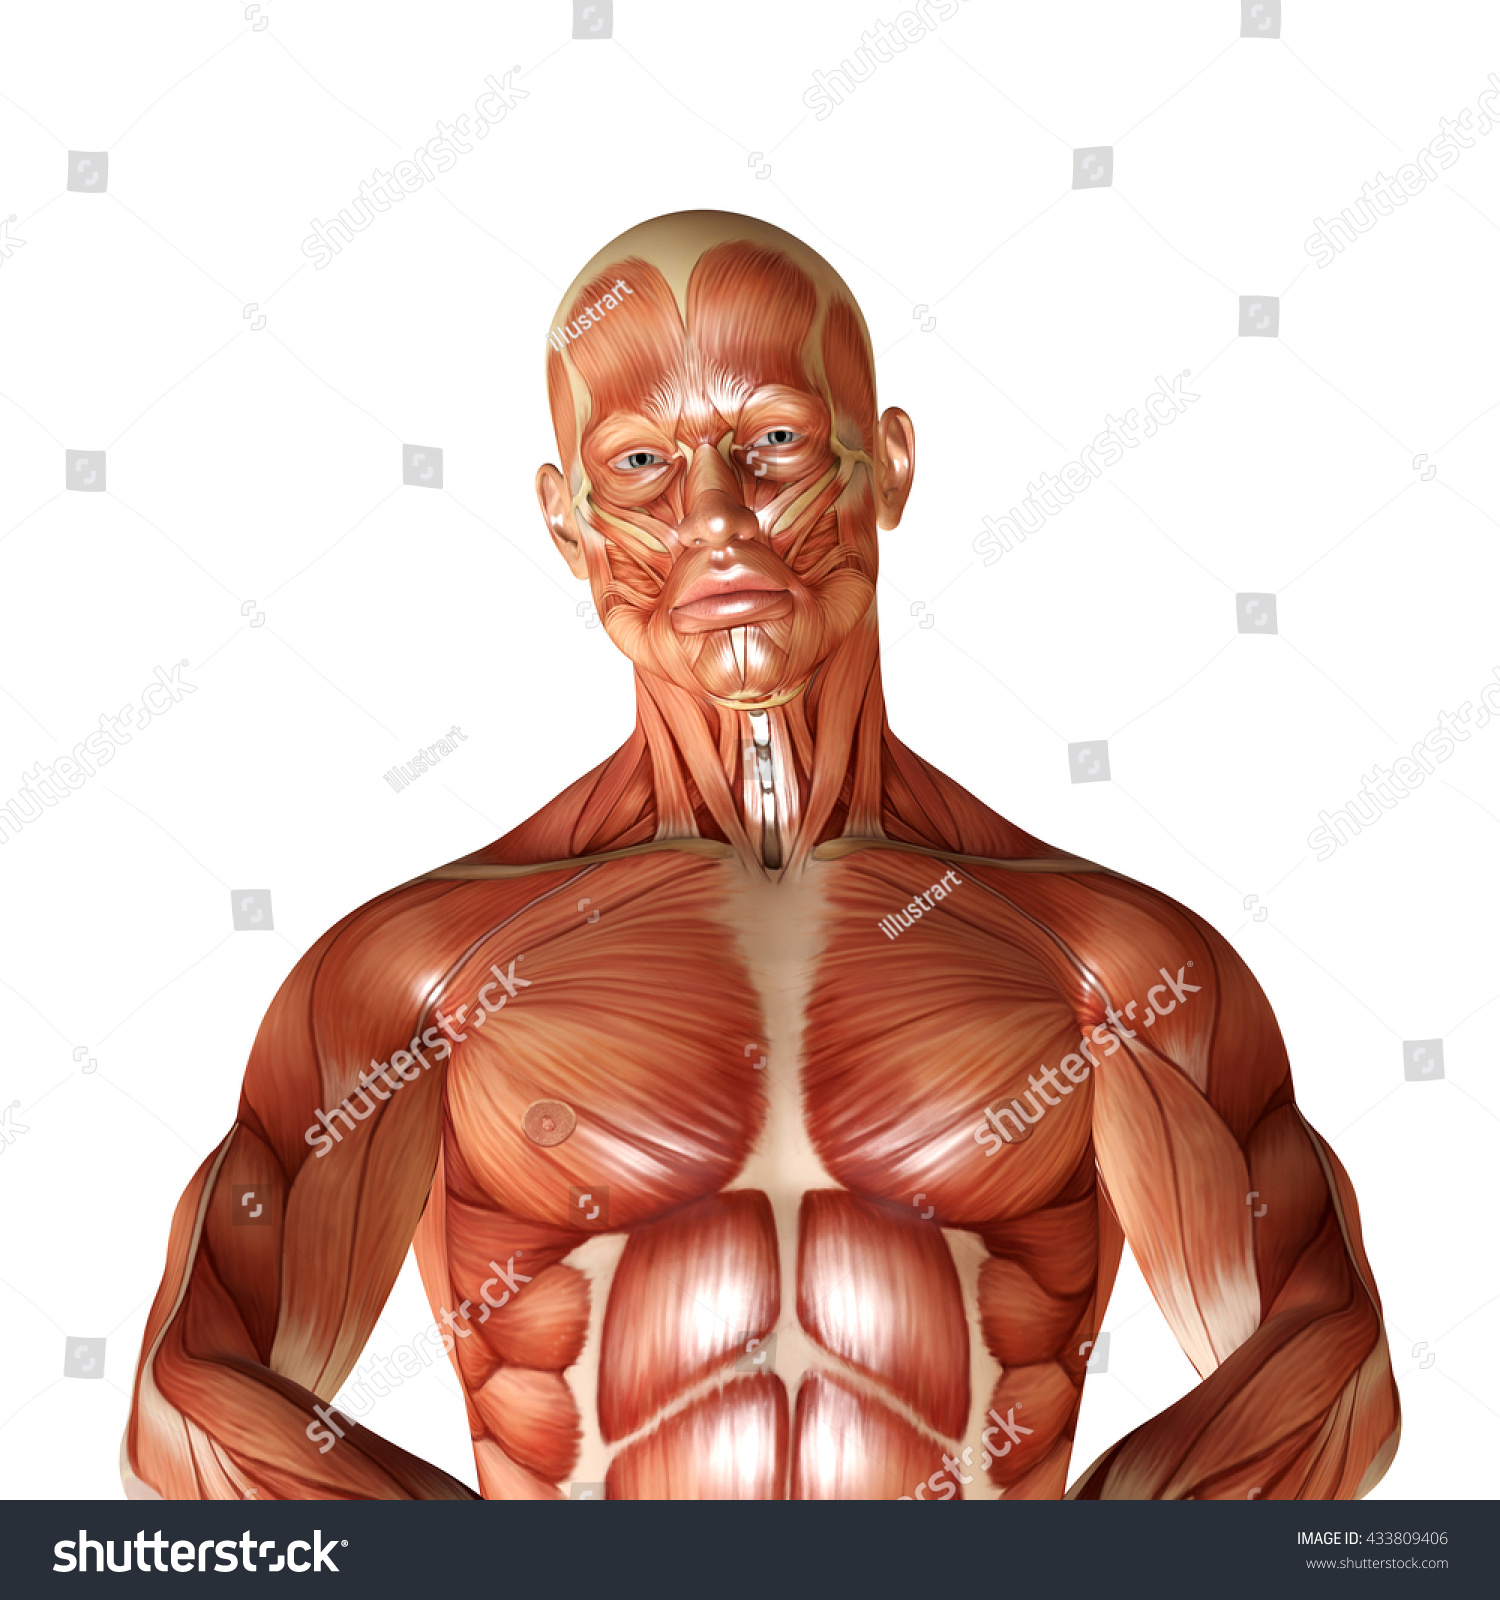 Royalty Free 3d Render Of A Male Muscular Anatomy 433809406 Stock